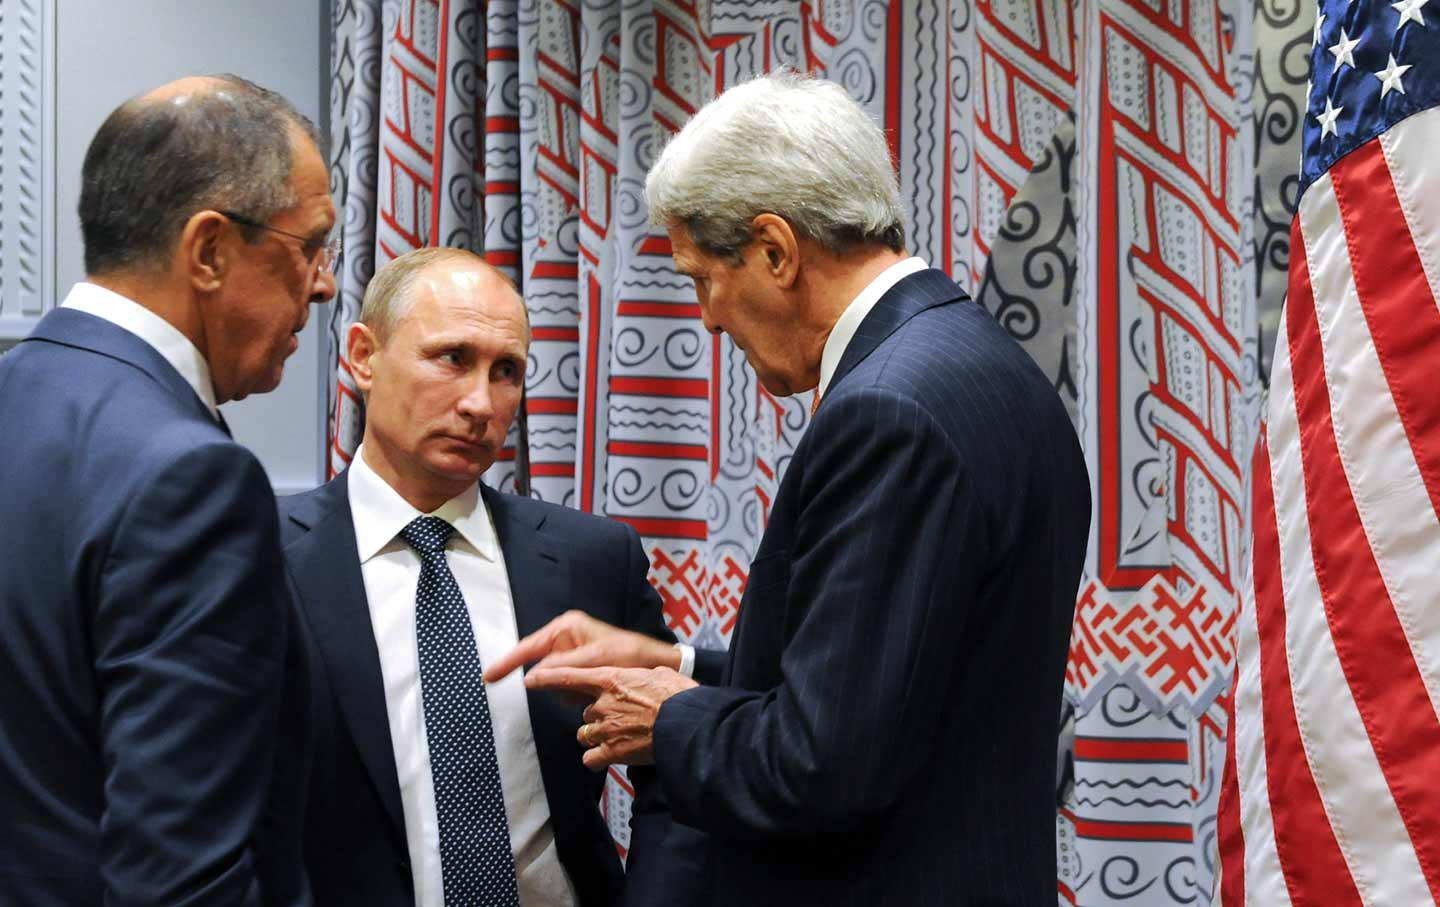 Russian President Vladimir Putin, Russian Foreign Minister Sergey Lavrov, and US Secretary of State John Kerry